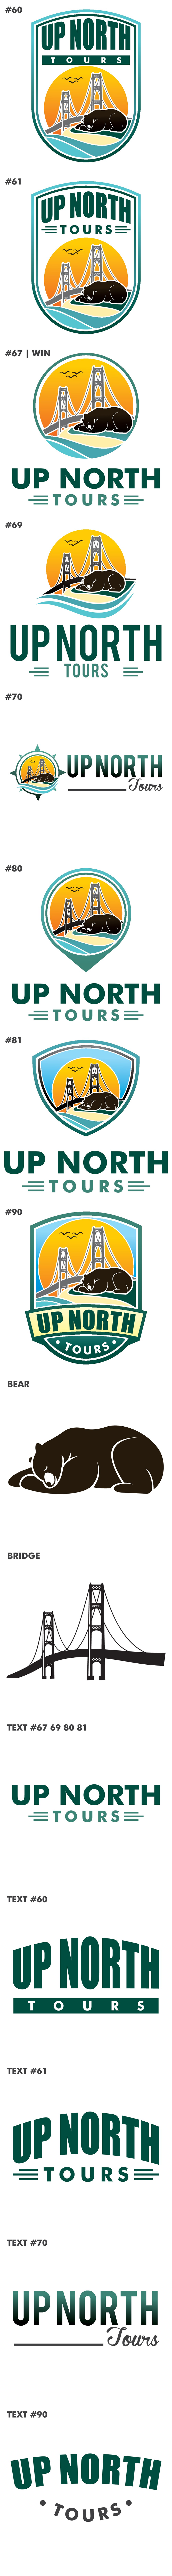 Design a logo for the tour company Up North Tours